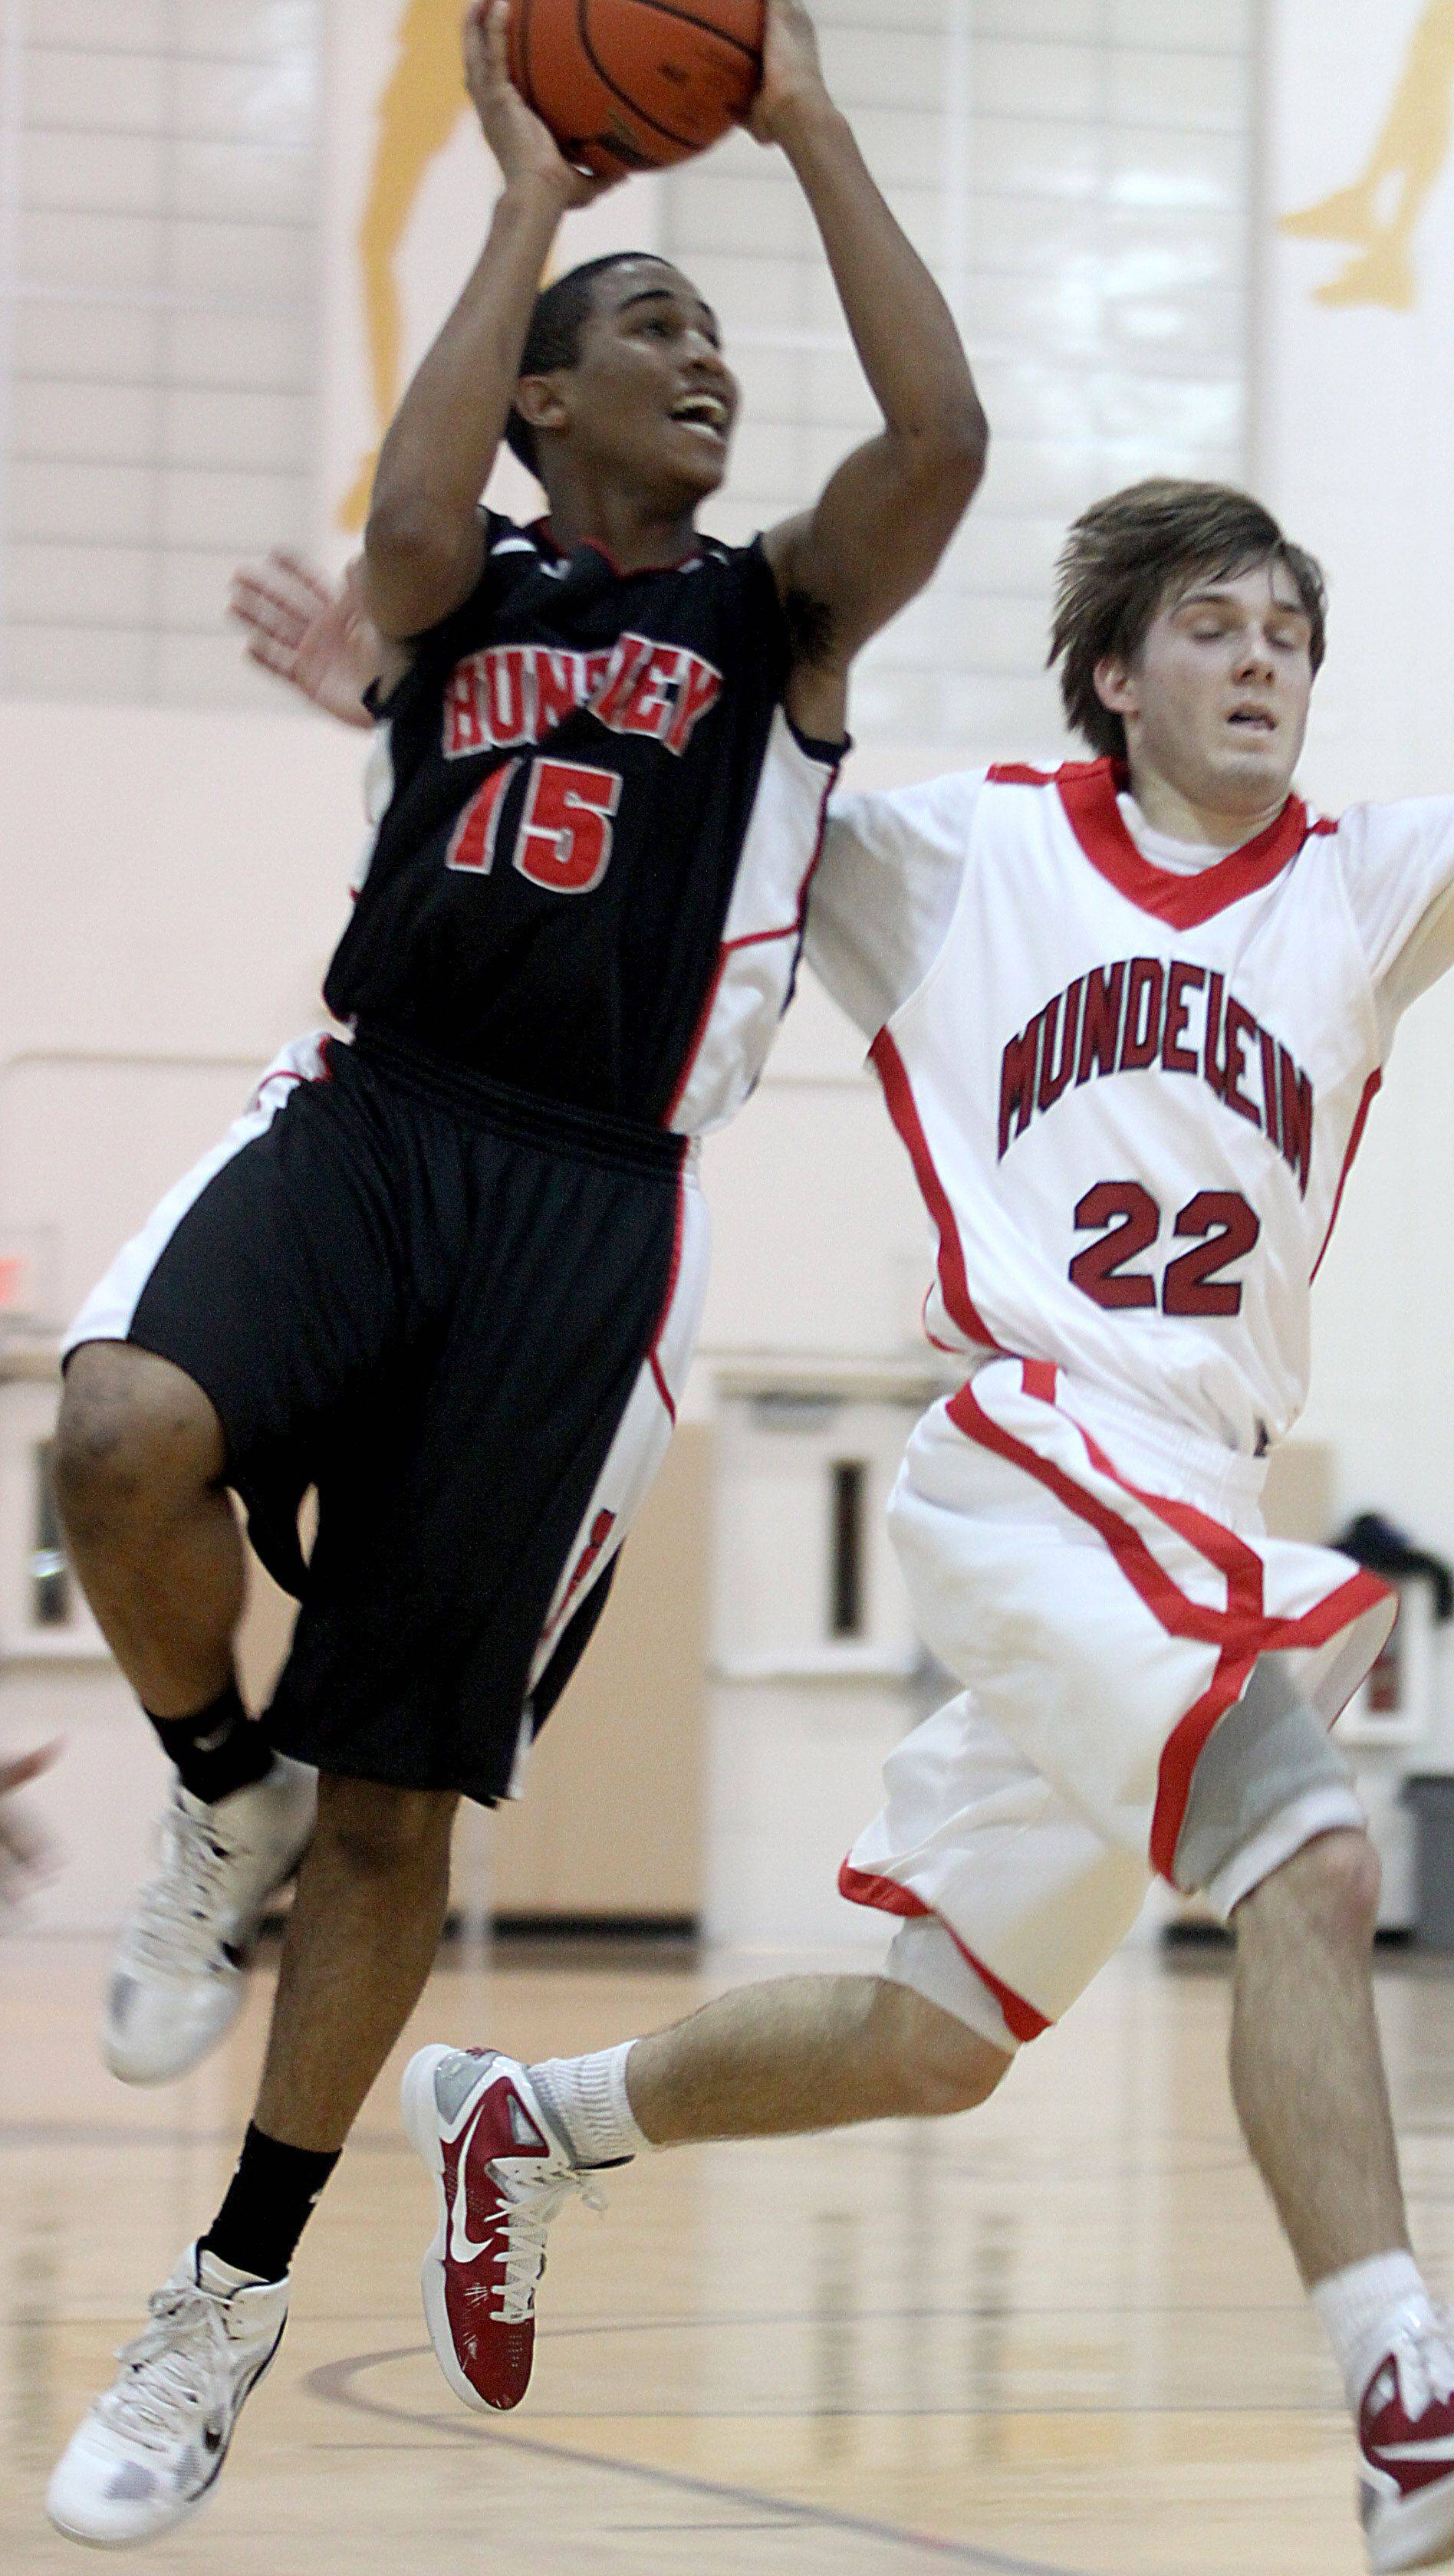 Bryce Only of Huntley, left, shoots past the defense of Robert Knar of Mundelein during the title game of the Jacobs Holiday Classic Boys Basketball Tournament in Algonquin on Thursday night.